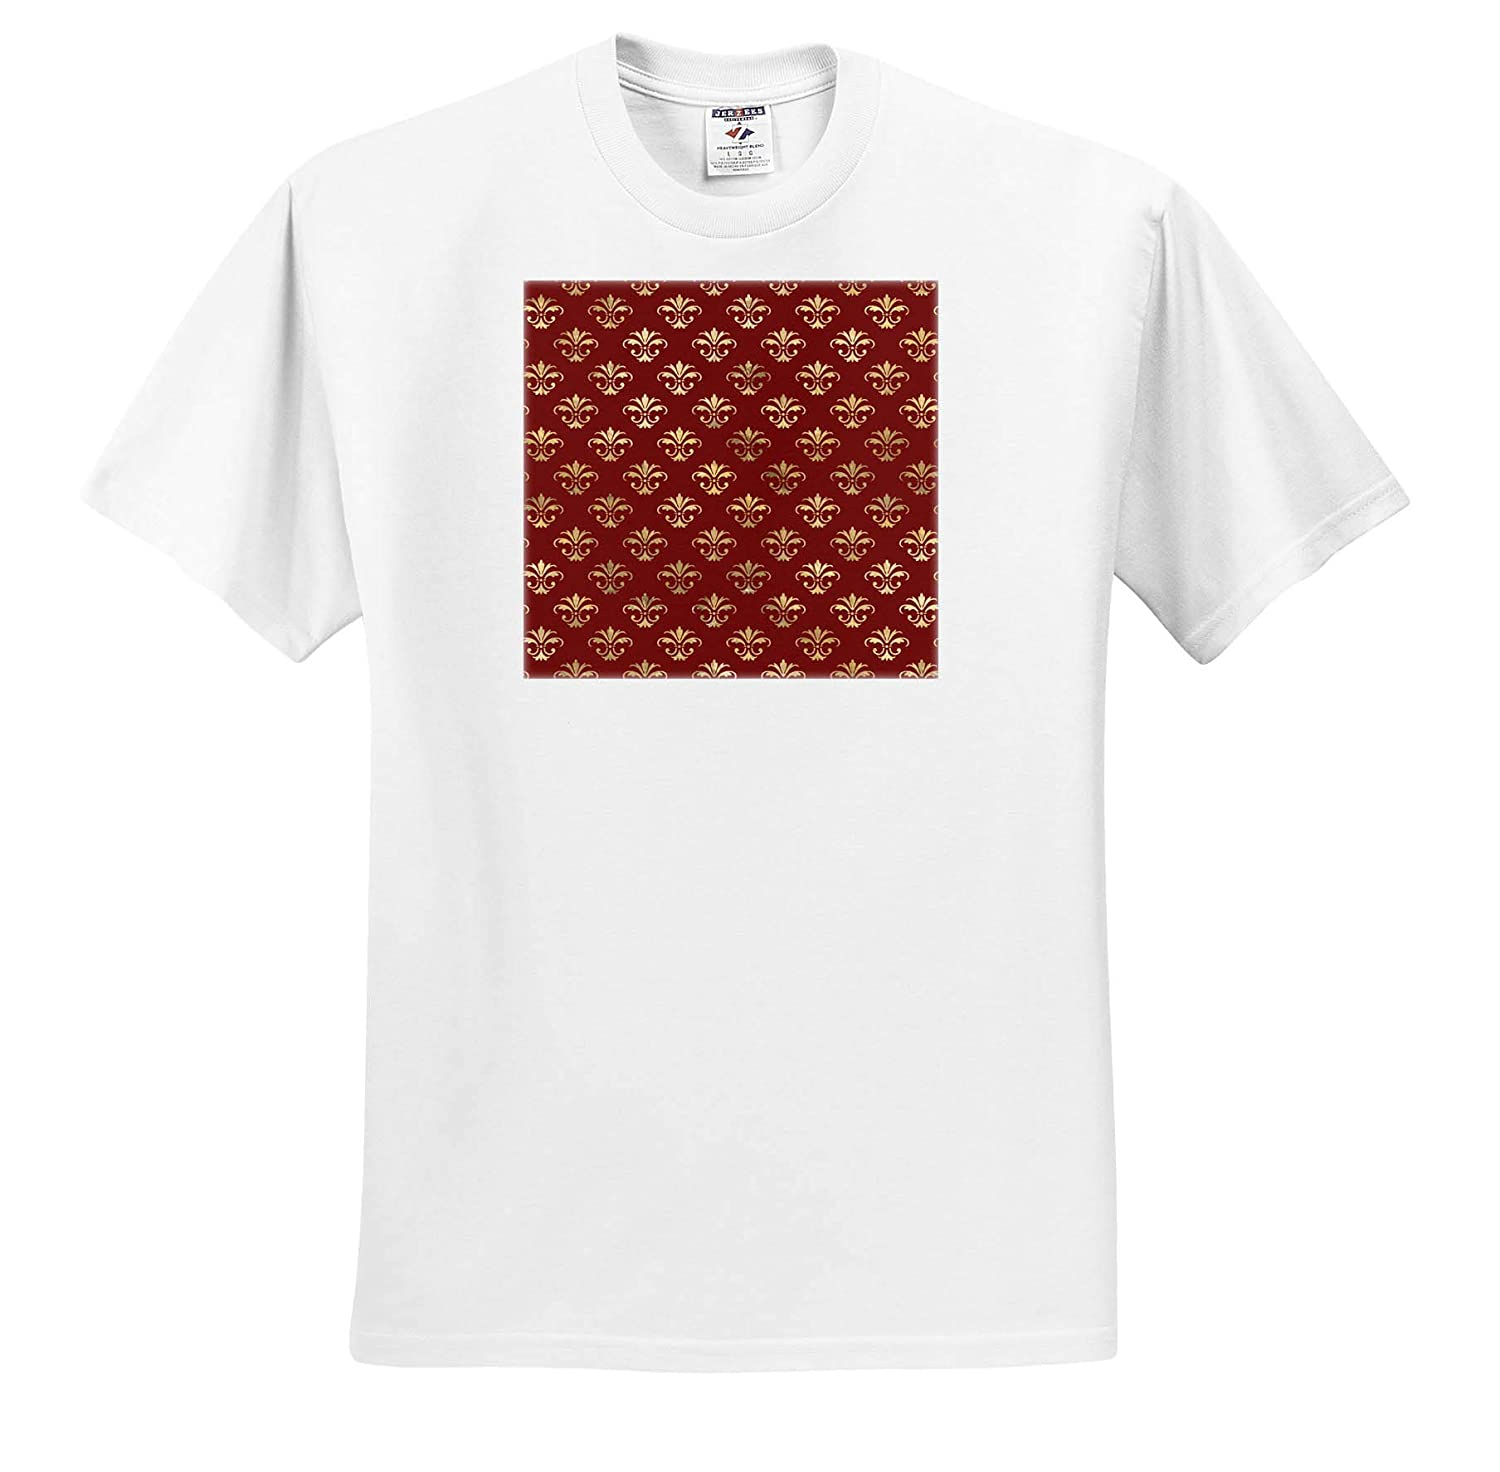 3dRose Anne Marie Baugh ts/_317638 Patterns Pretty Red and Image of Gold Ornamental Pattern Adult T-Shirt XL